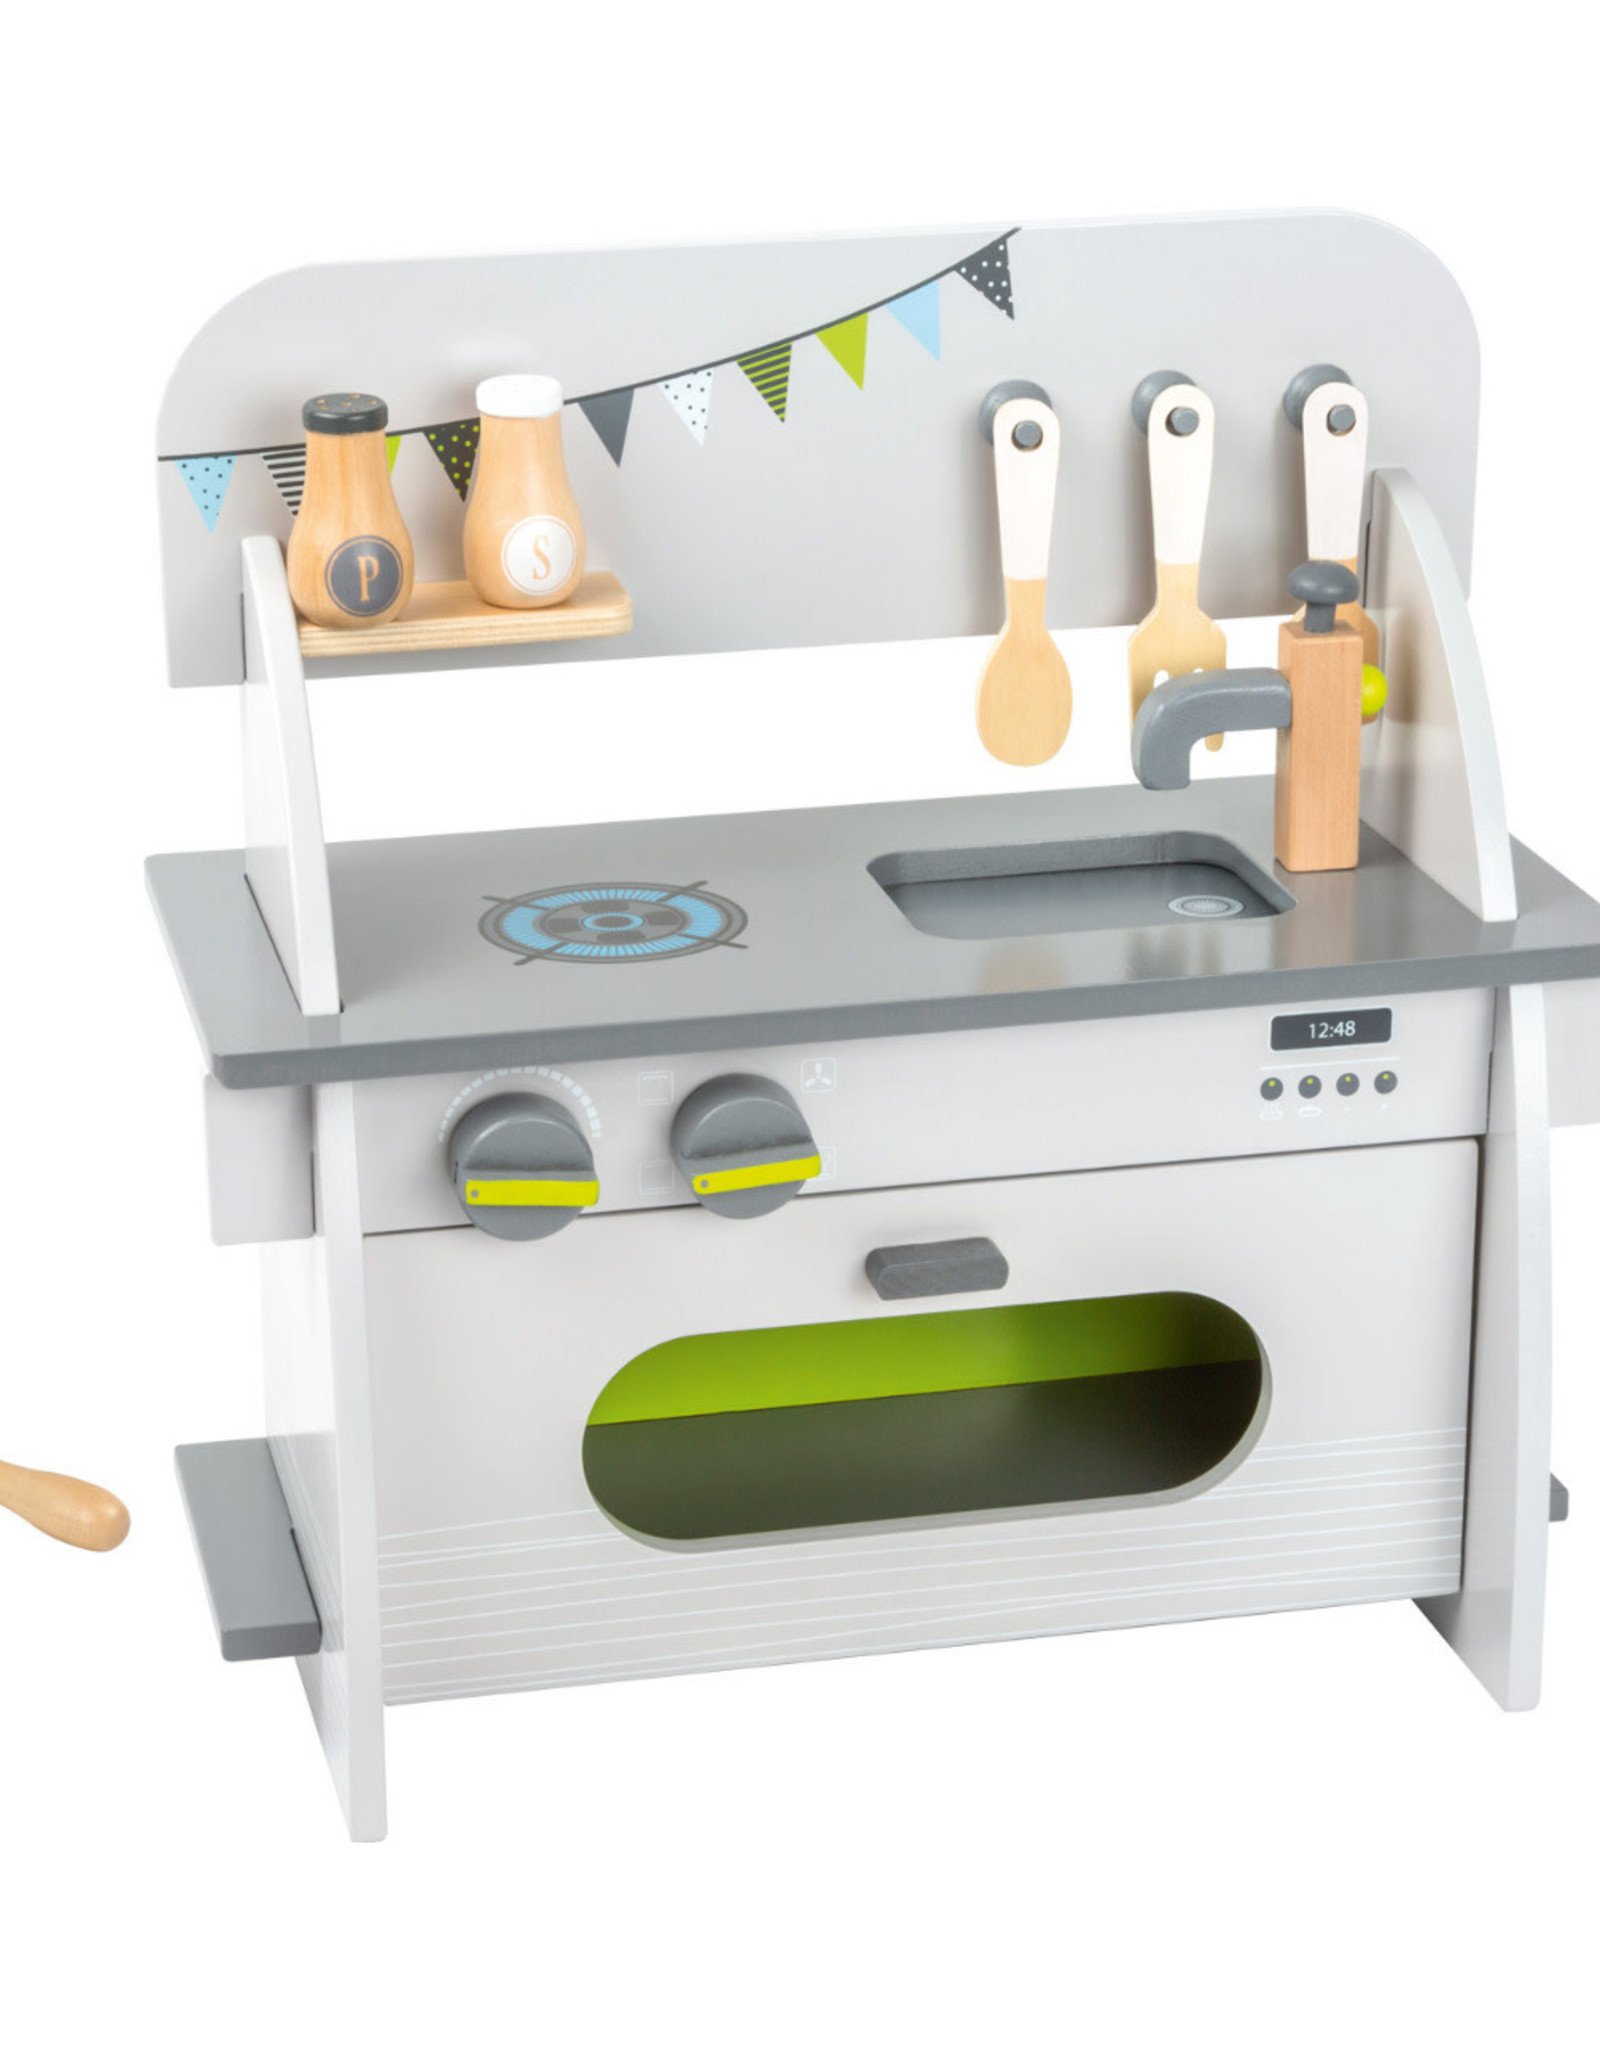 Small Foot Design Compact Play Kitchen Playset